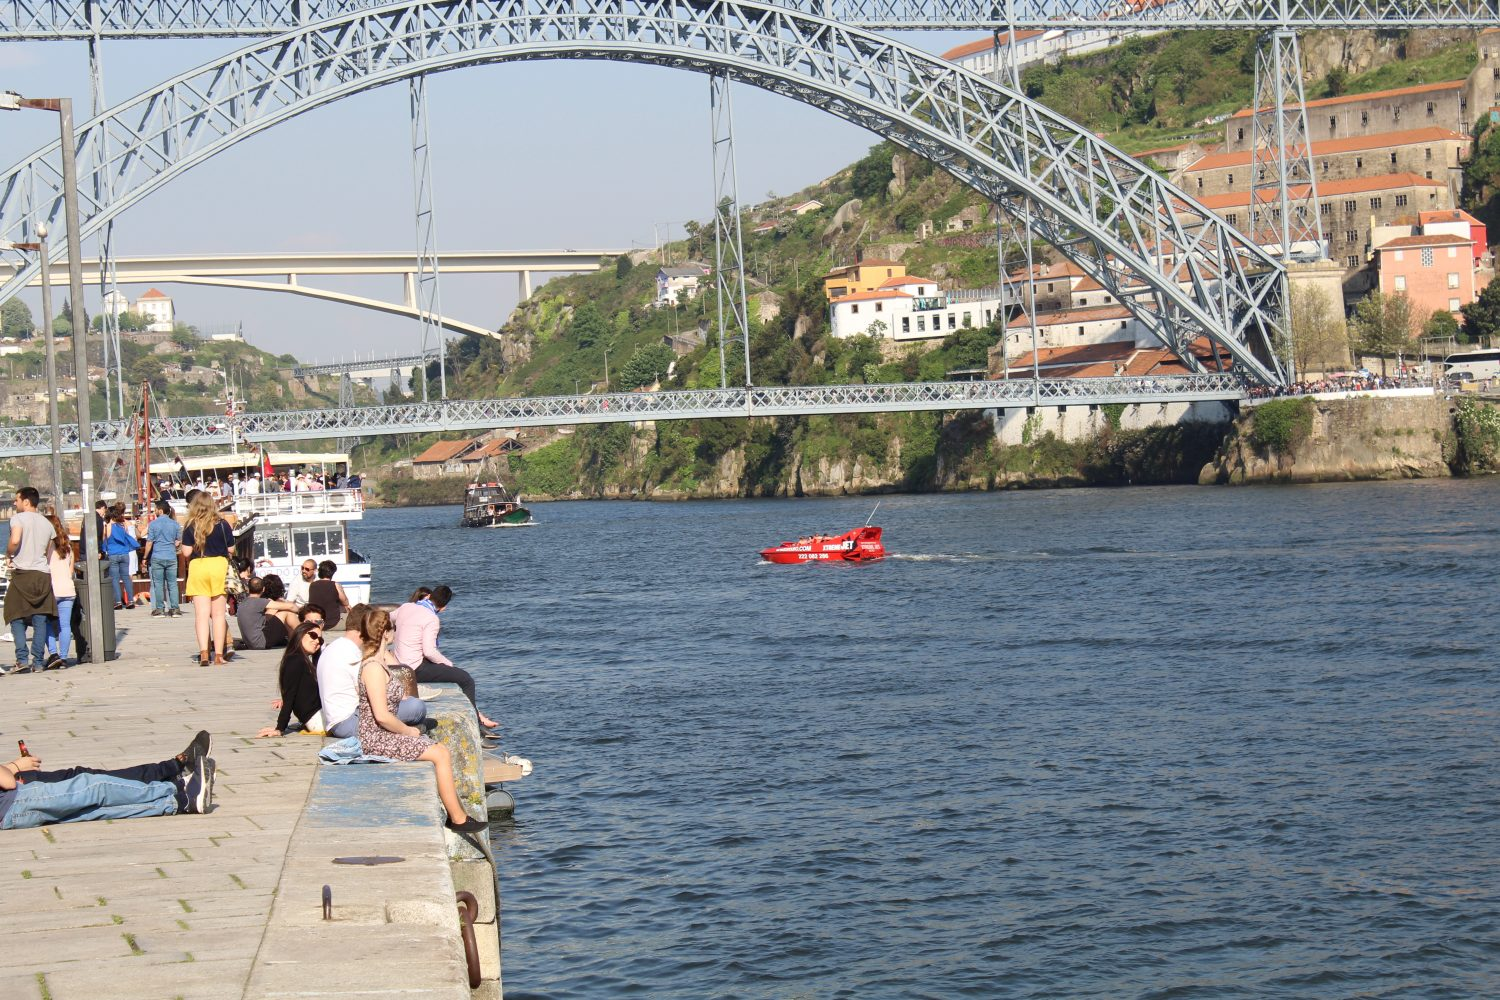 Jet Boat at Douro River near Ponte Luis I